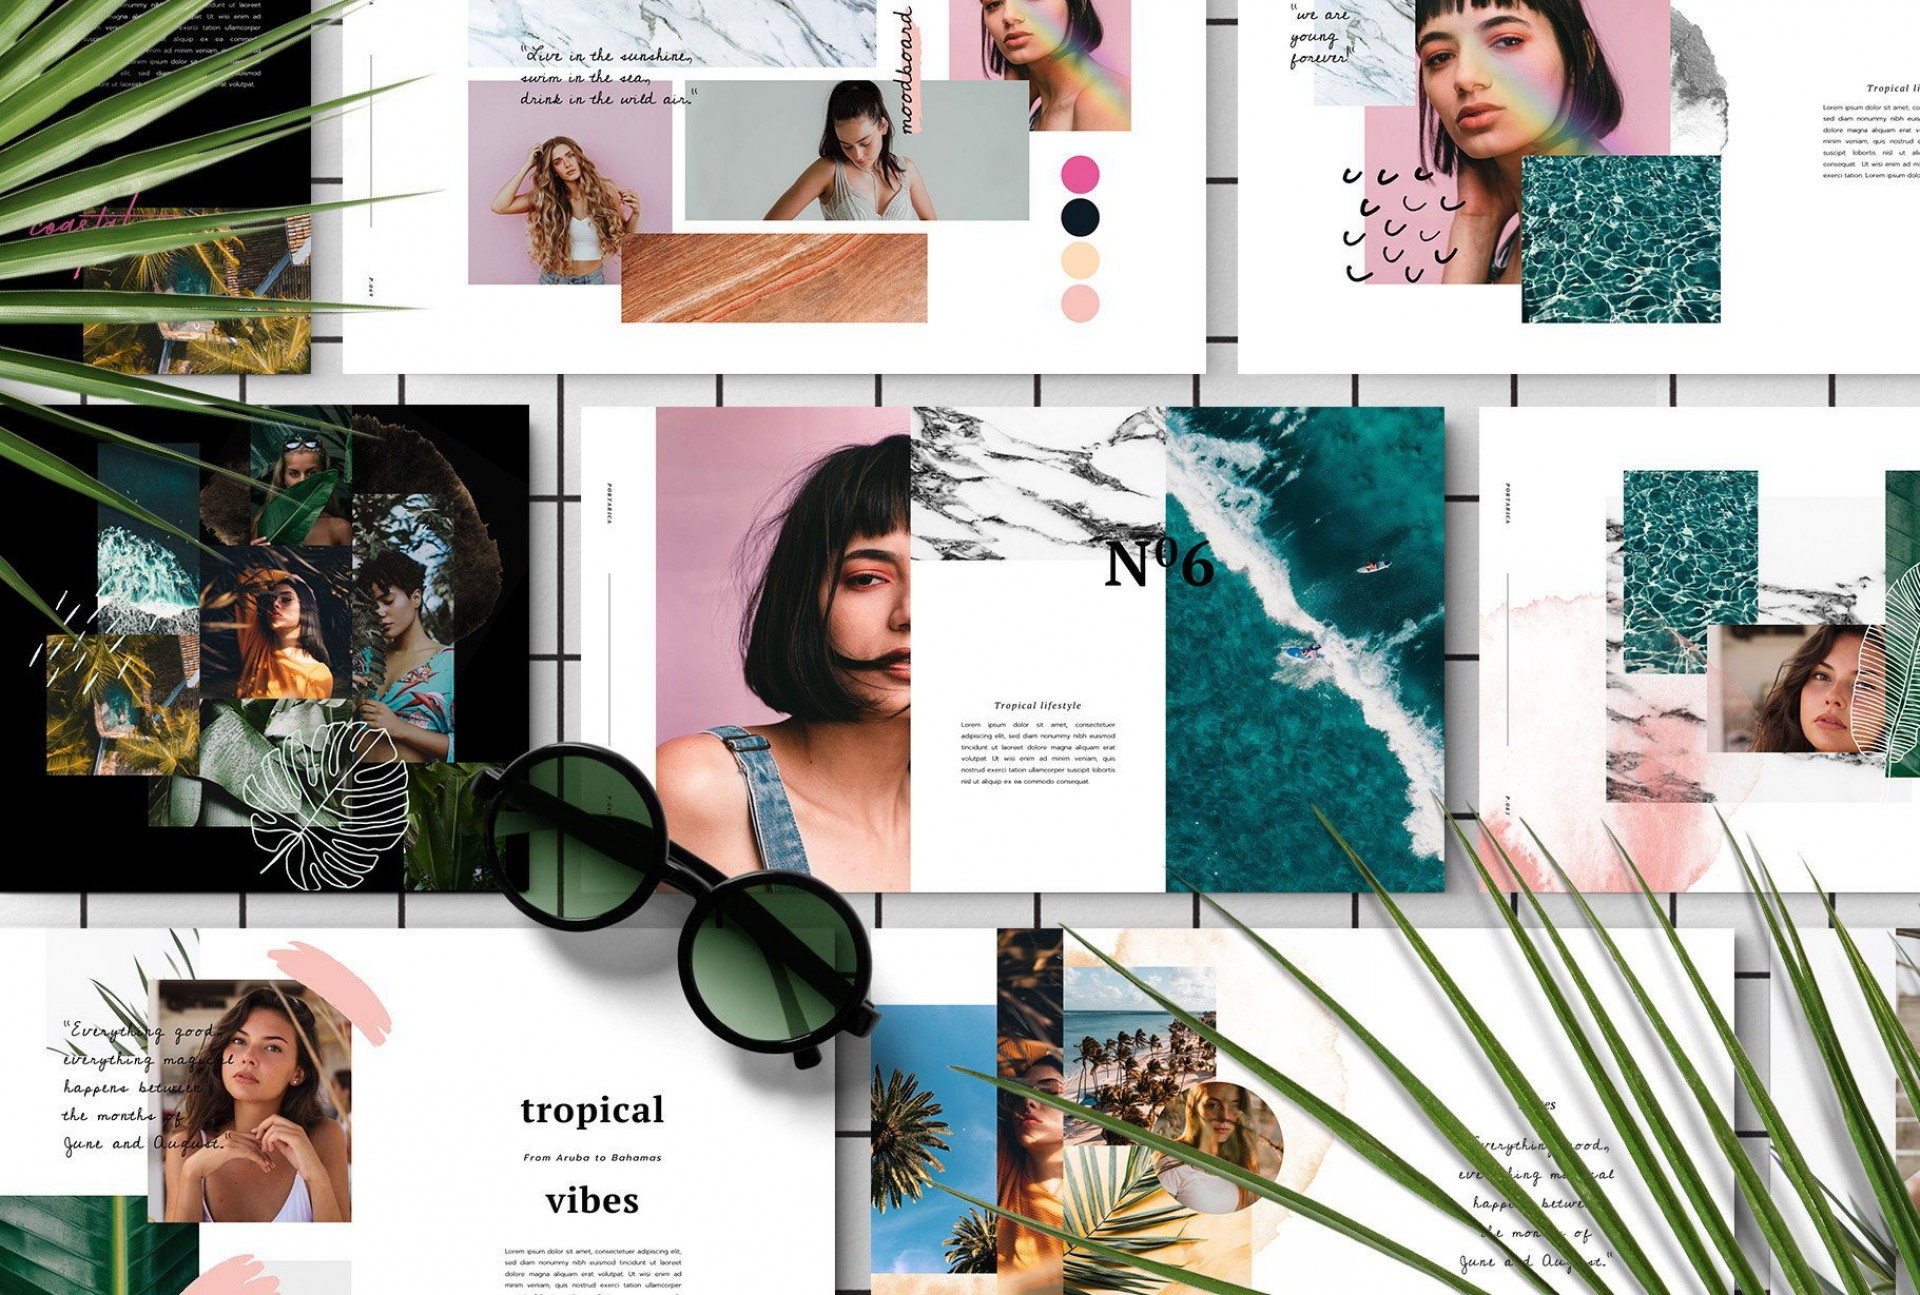 005 Best Free Photo Collage Template For Powerpoint Highest Clarity 1920